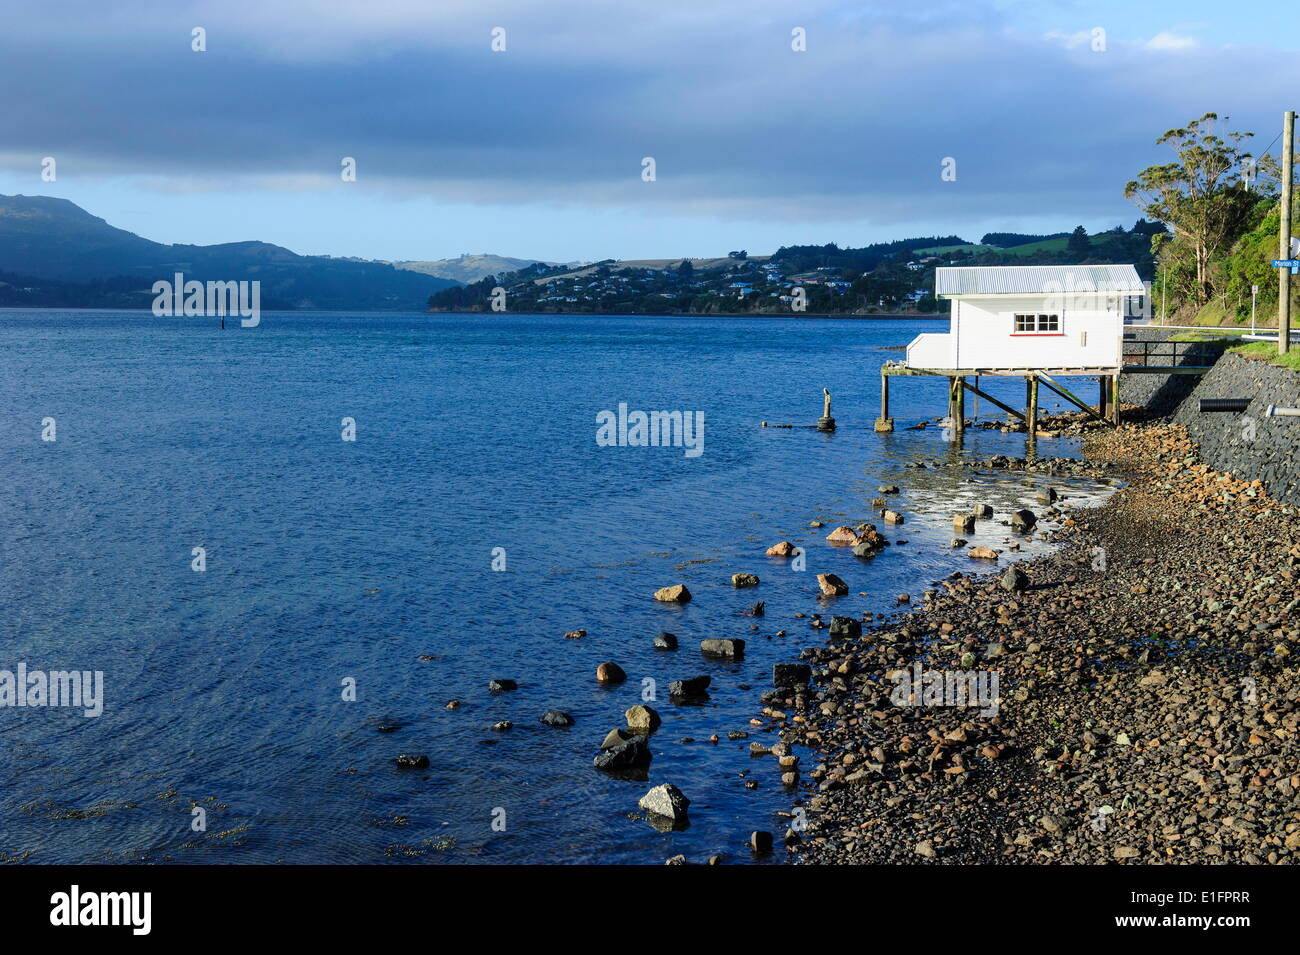 Little fishing cottage on a rocky beach, Otago Peninsula, Otago, South Island, New Zealand, Pacific - Stock Image